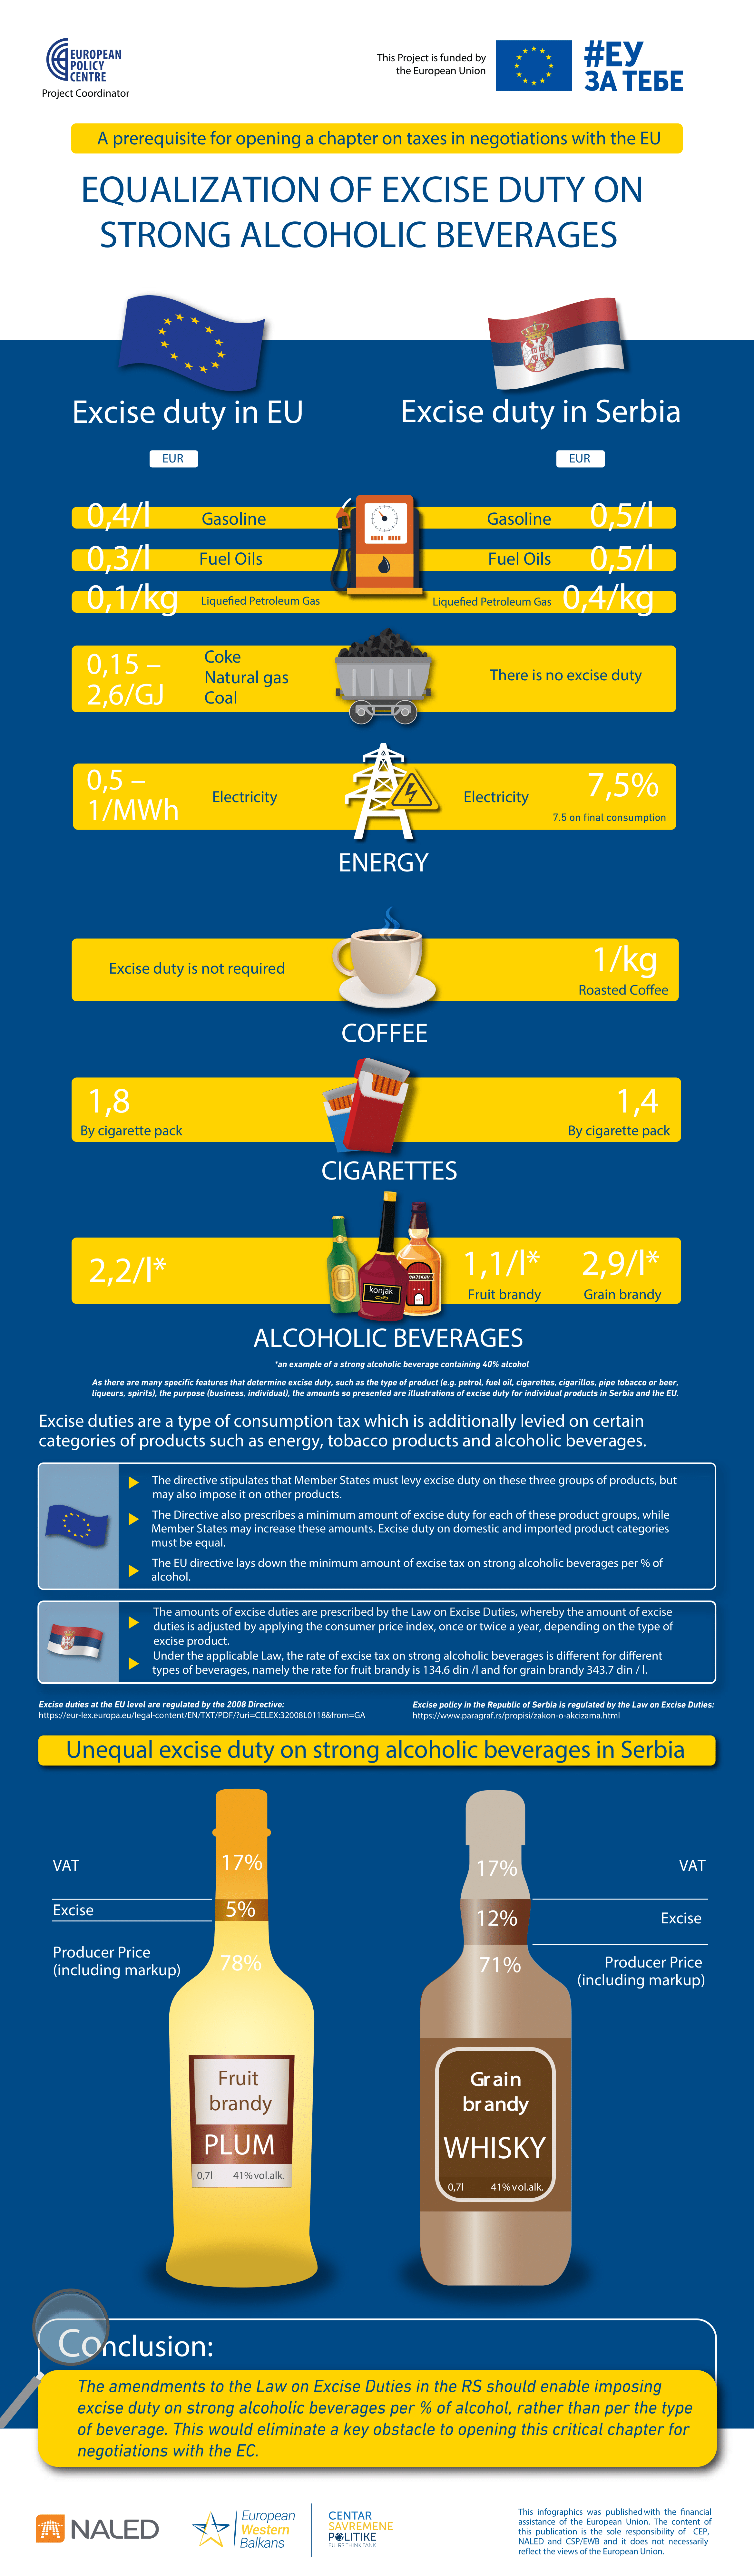 Infographic-Equalization_of_Excise_Duty_on_Strong_Alcoholic_Beverages-1.png